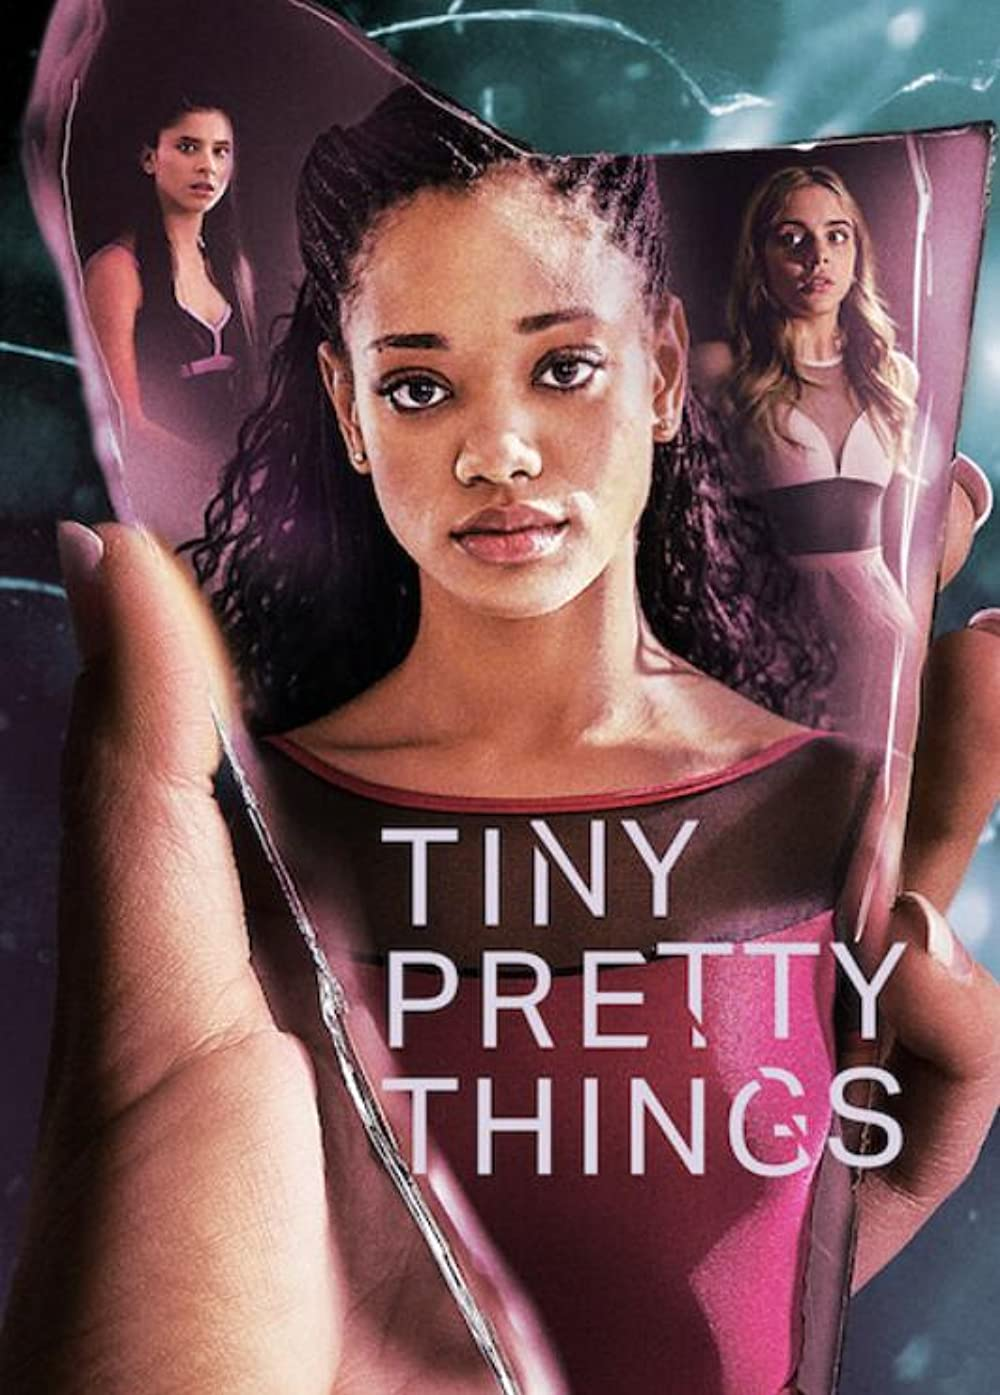 Tiny Pretty Things S01 2020 Hindi Complete Netflix Web Series 720p HDRip 3.9GB Download